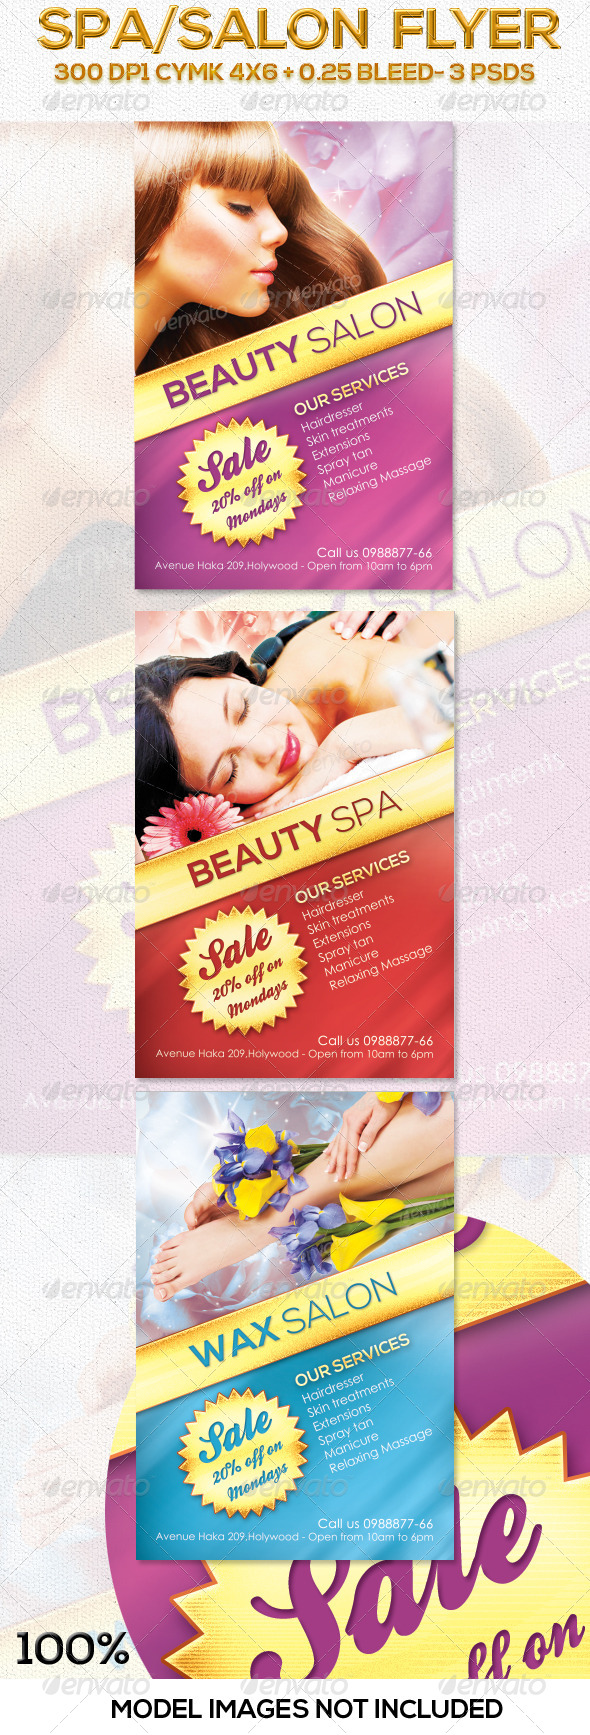 Salon Spa Flyer in 3 Colors